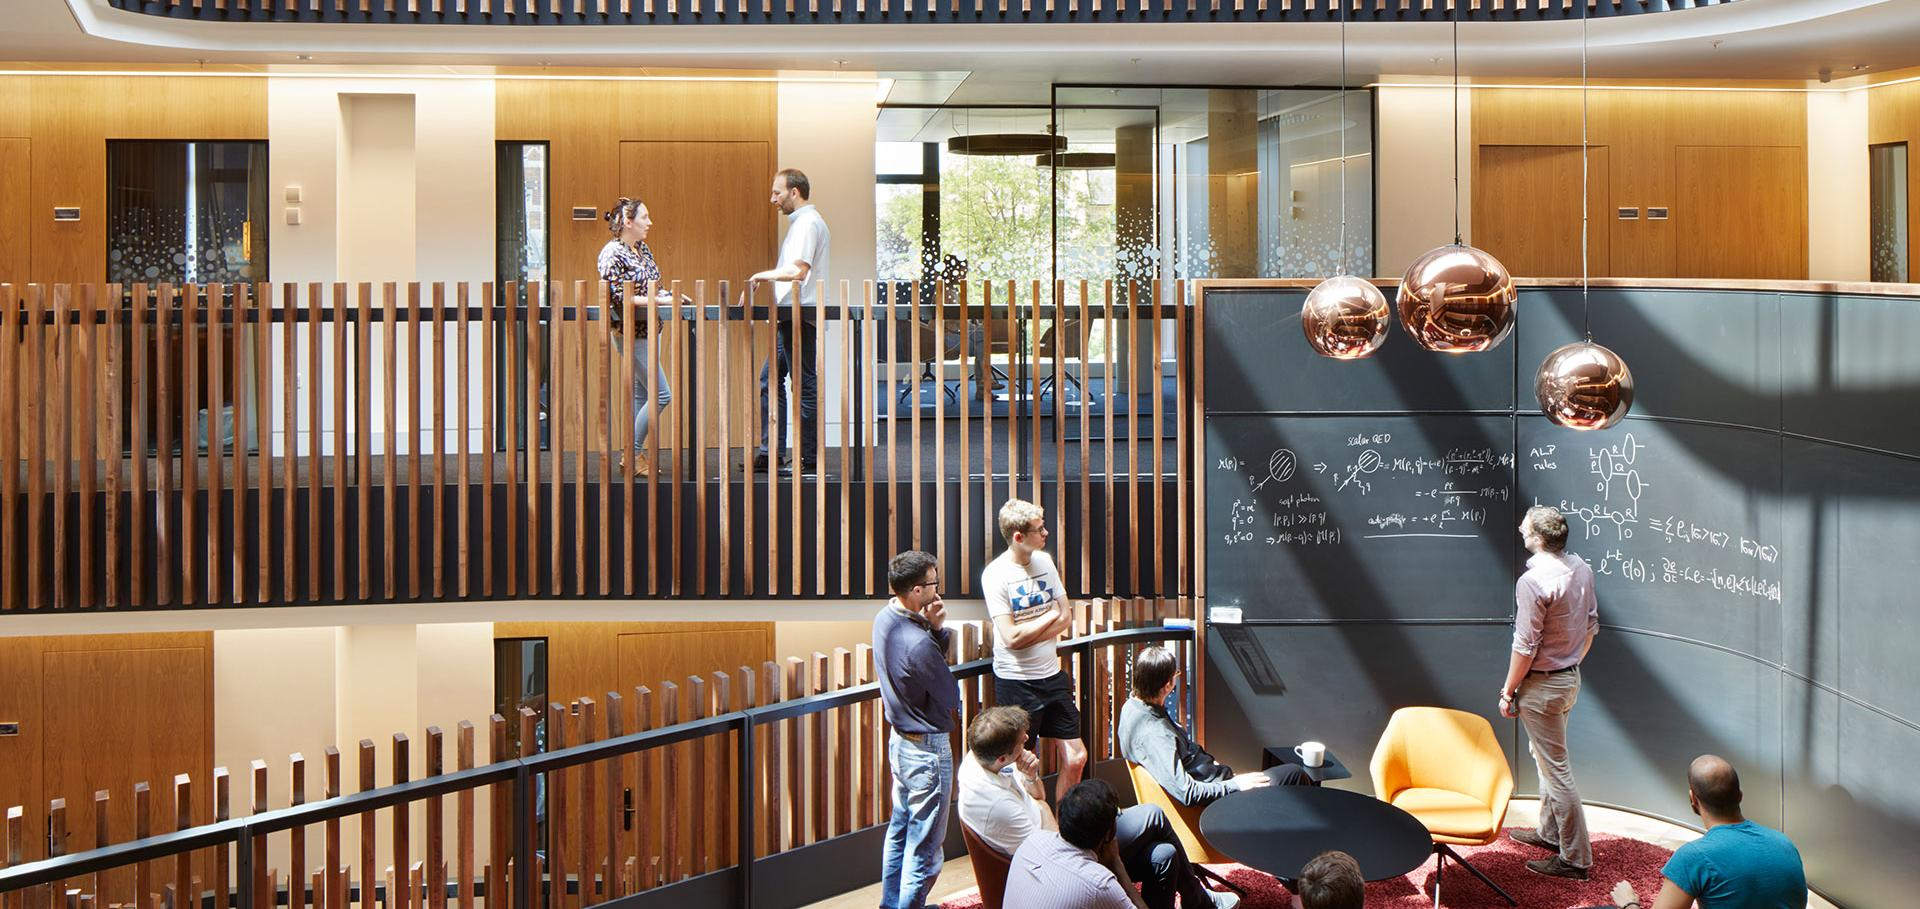 Theoretical physicists working at a blackboard collaboration pod in the Beecroft building.